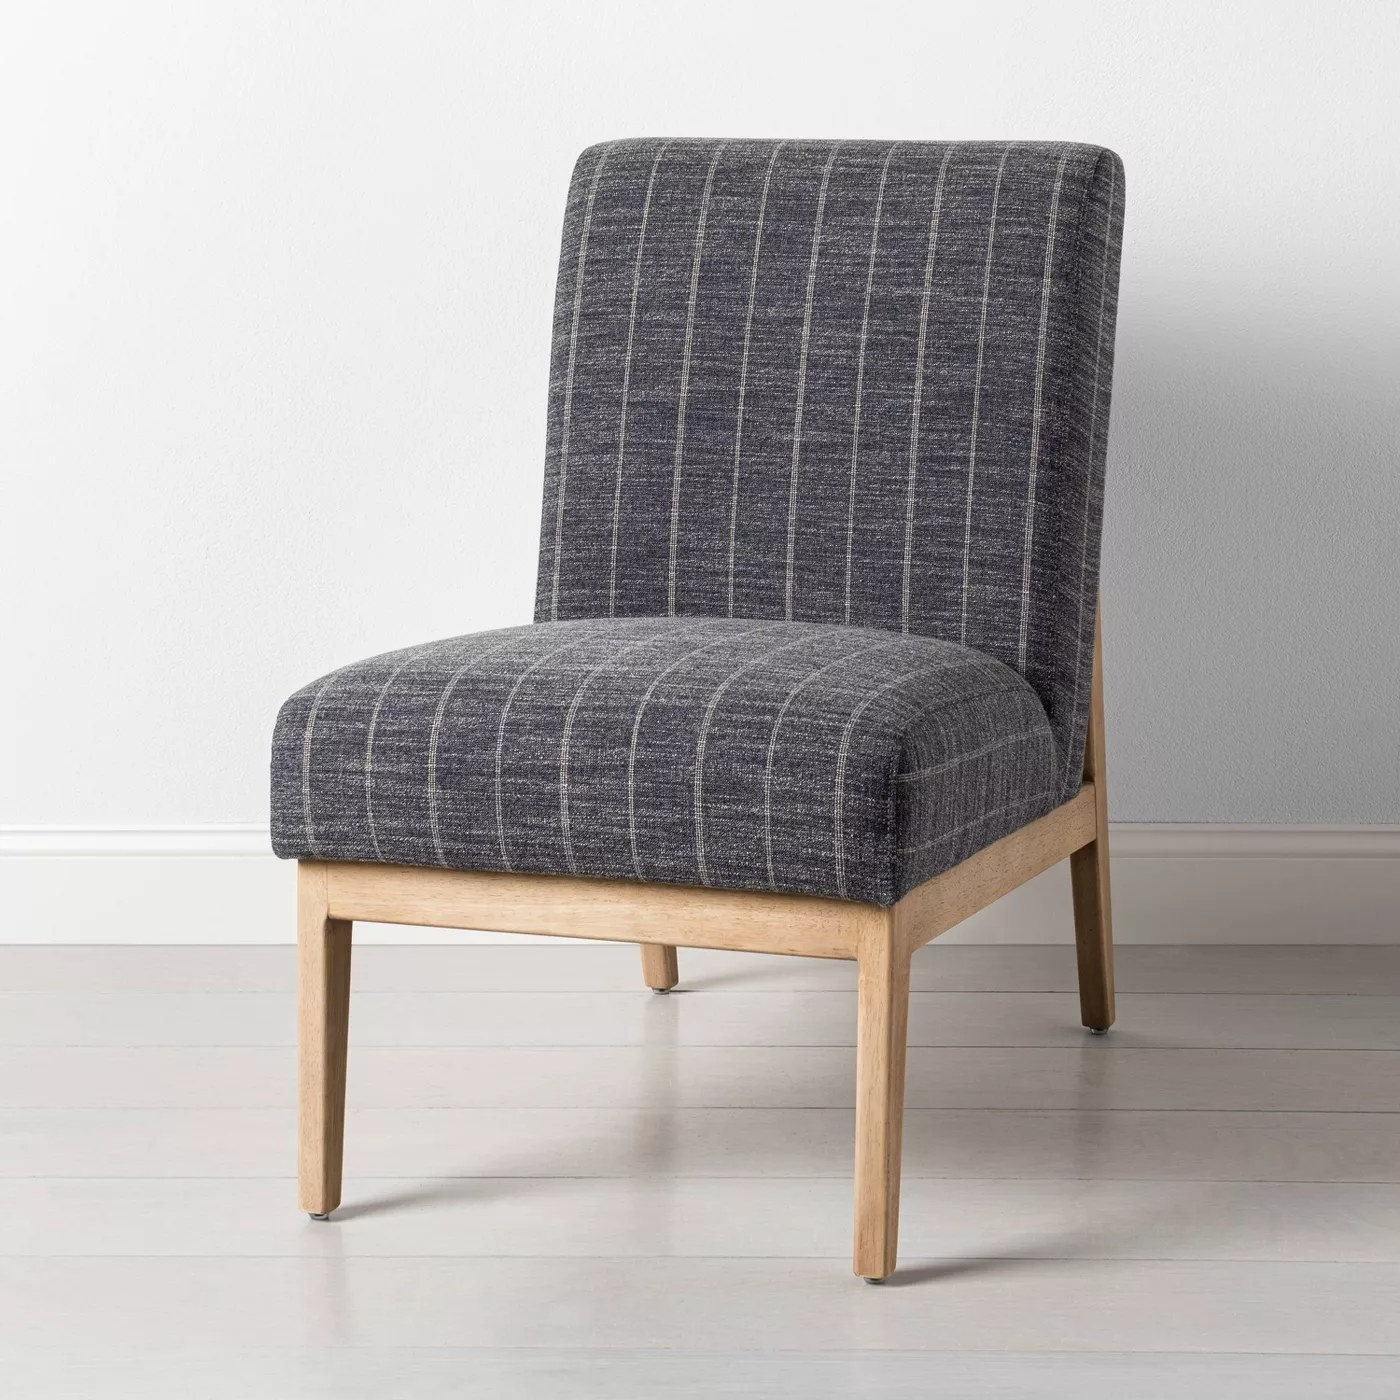 The armless chair with a gray striped fabric and light wood frame